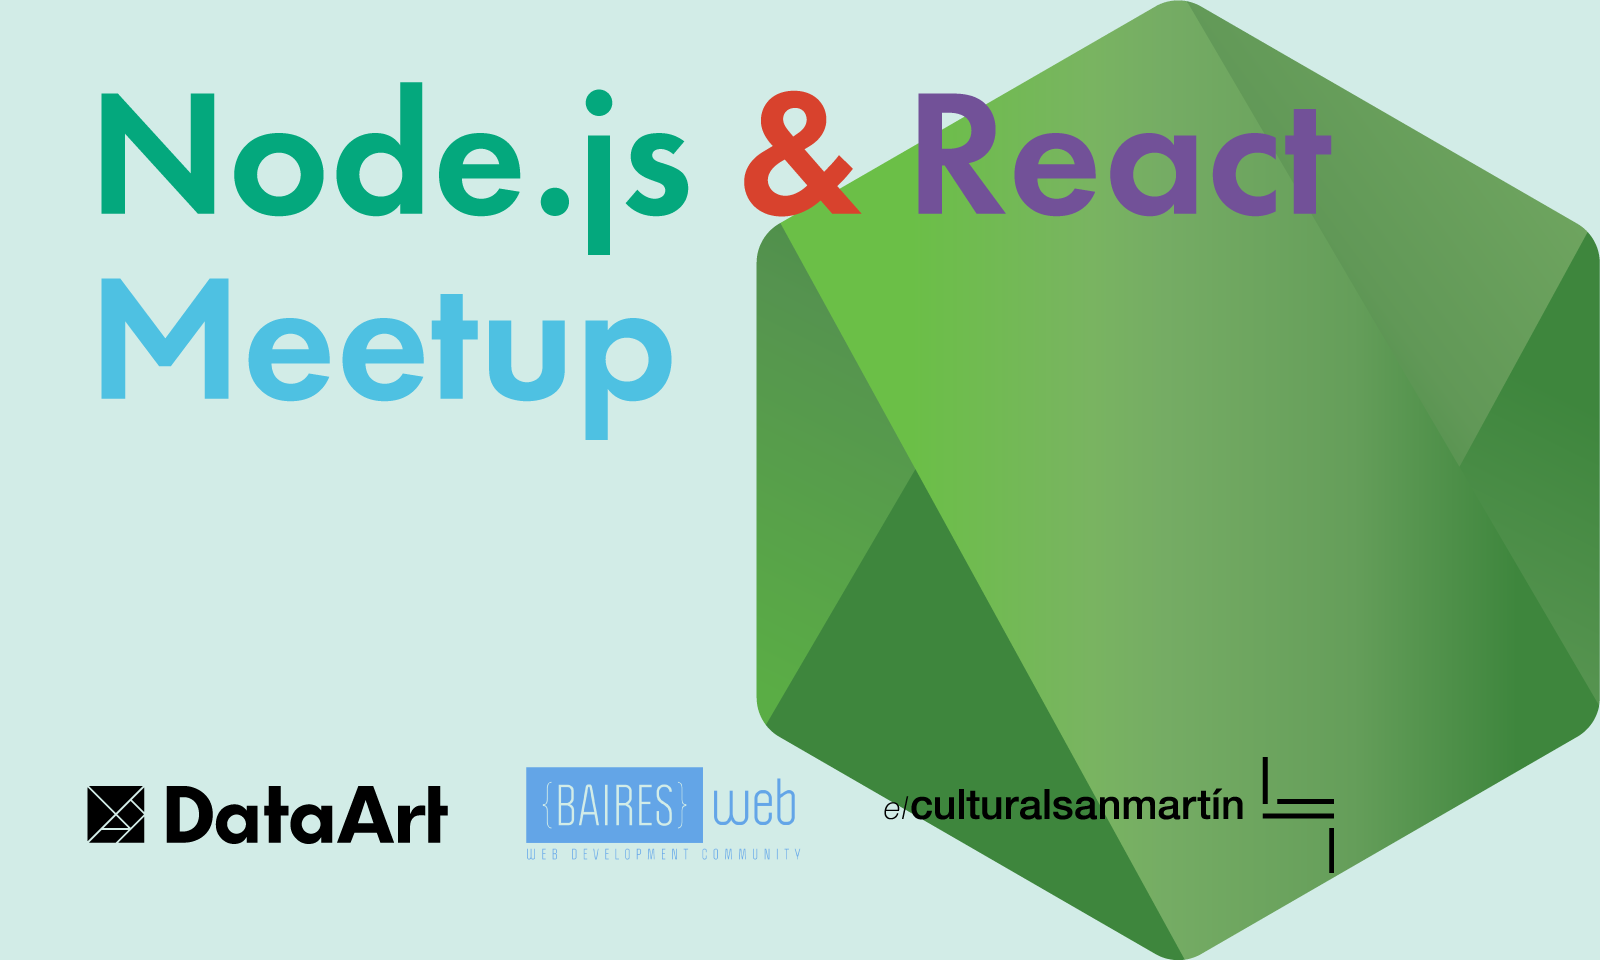 Node.js & React Meetup